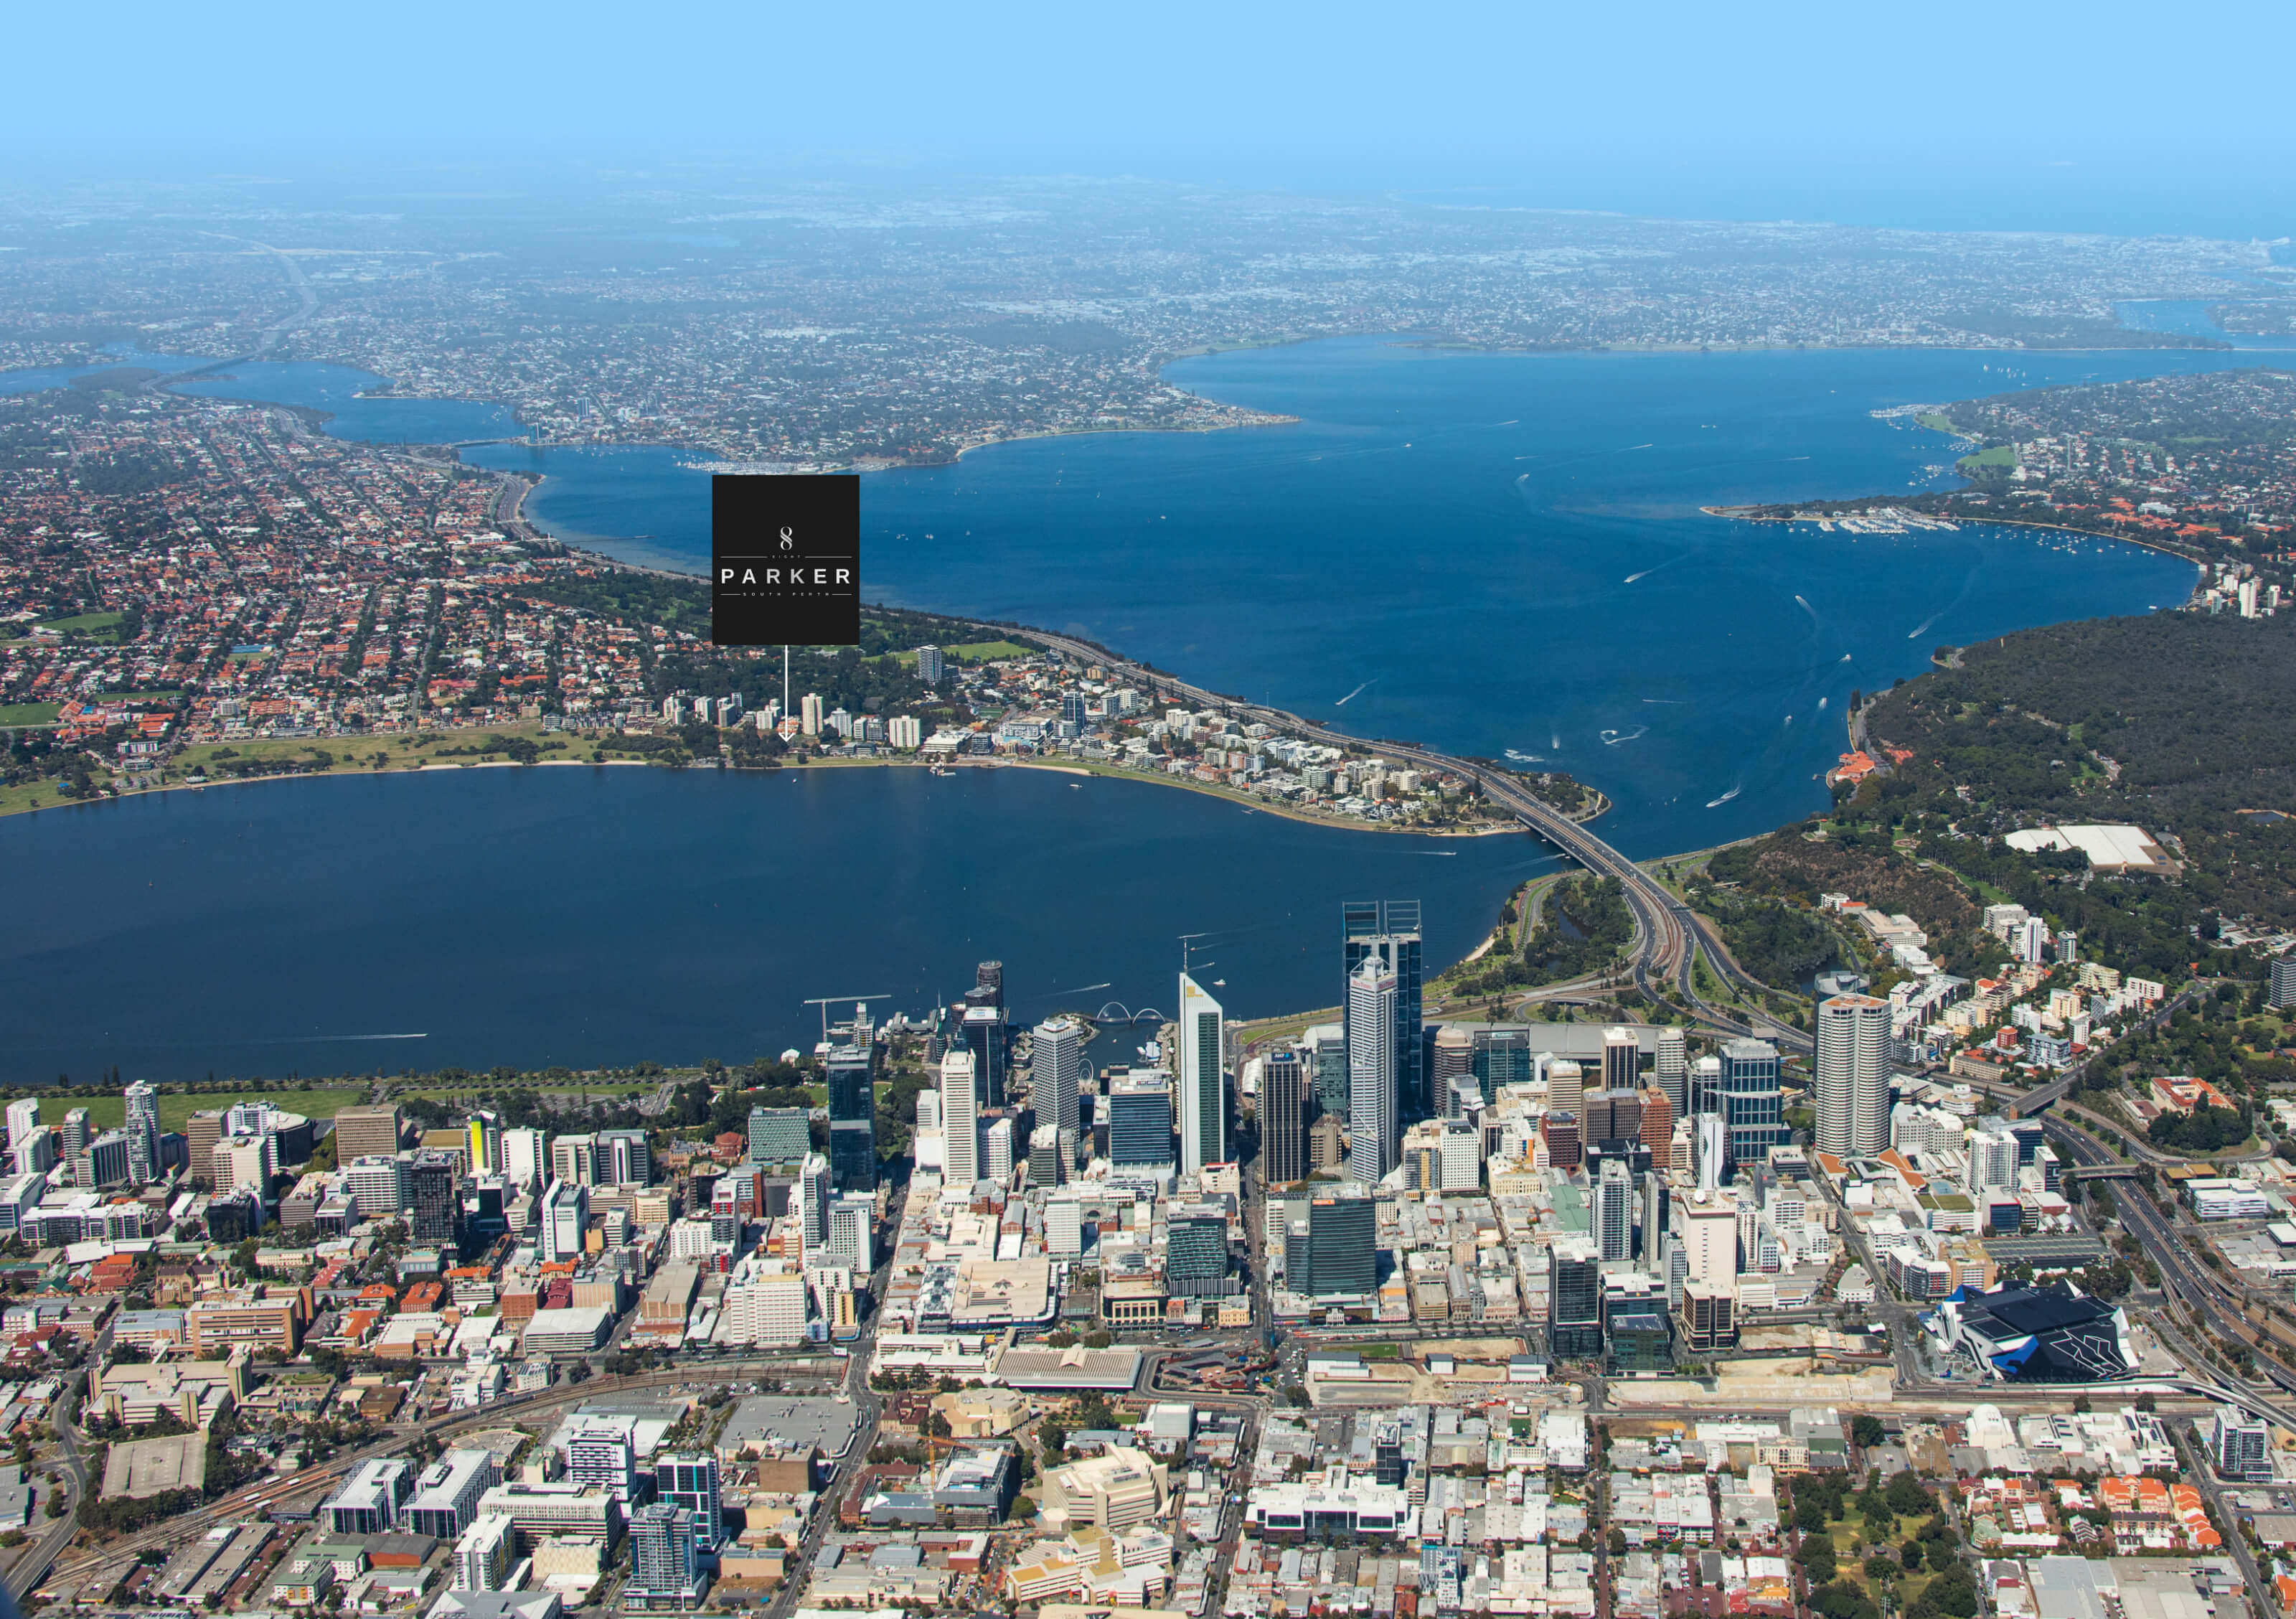 Aerial shot looking south from Perth to the developments location on the Swan River foreshore